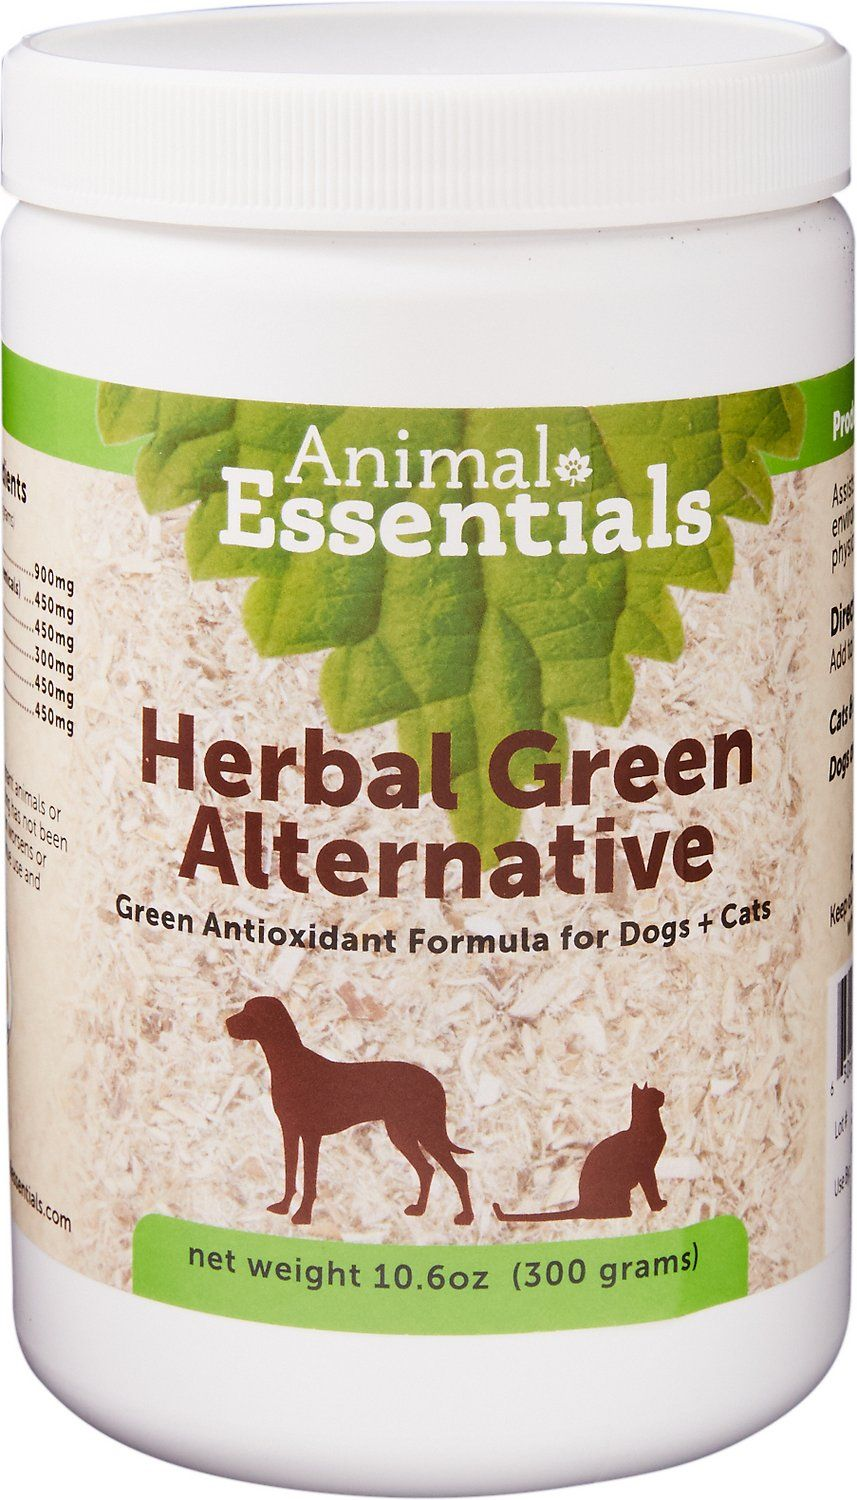 Green alternative offers a synergistic balance of